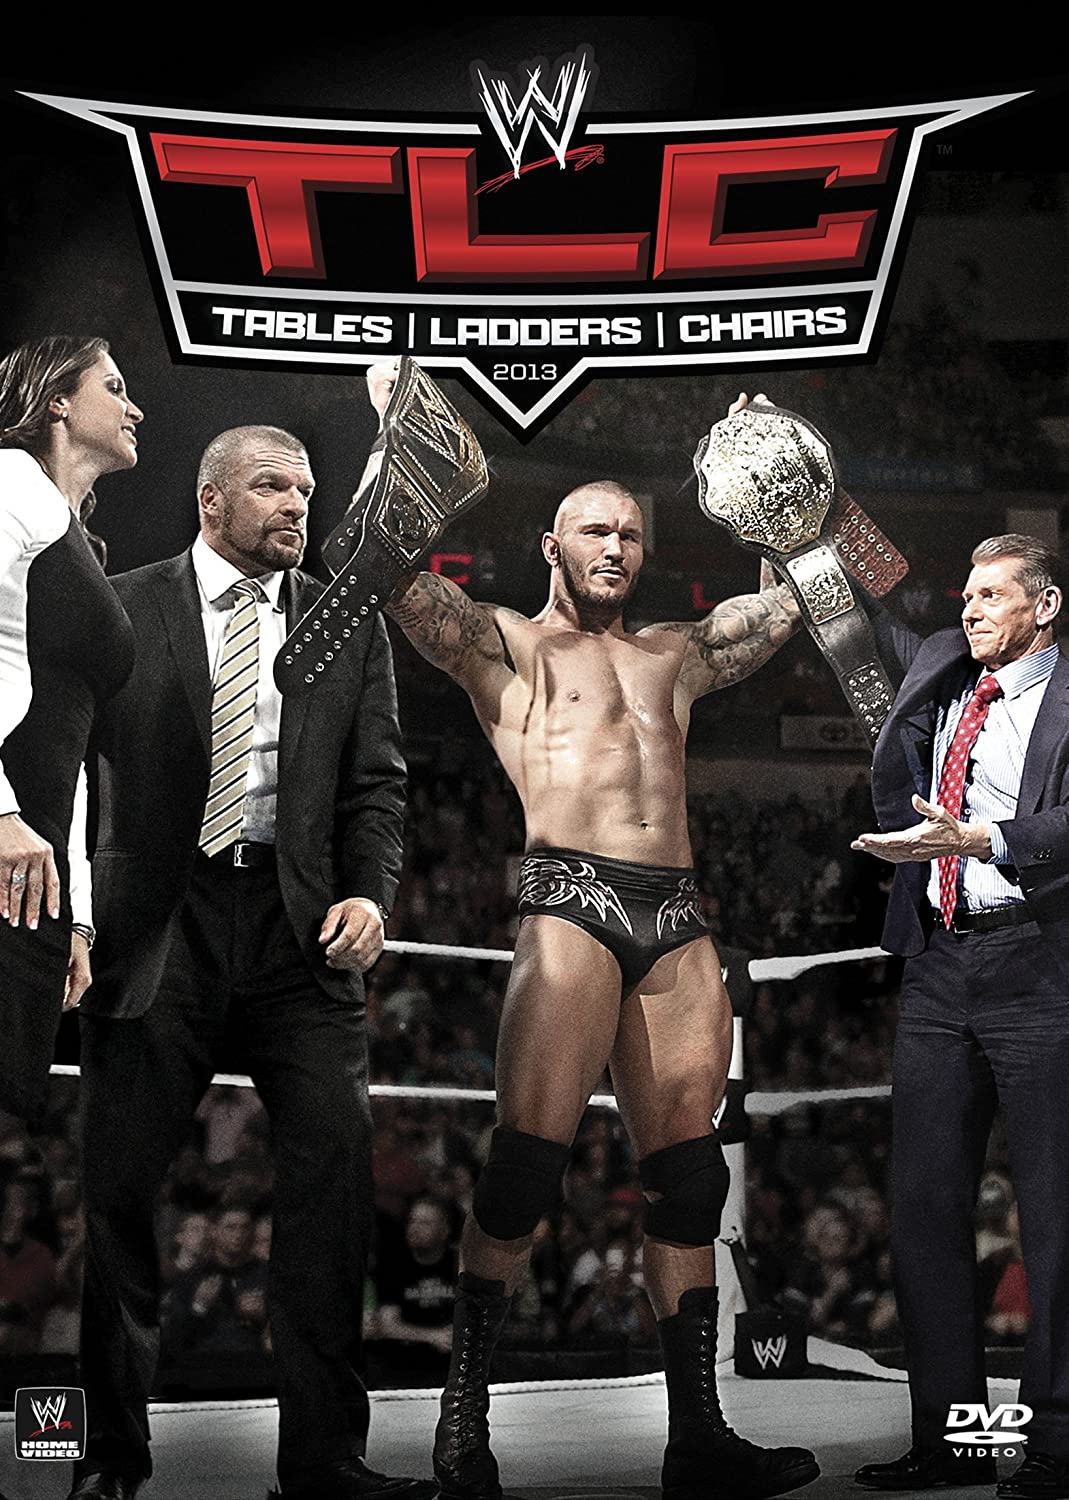 Wwe tables ladders and chairs 2013 poster - Amazon Com Wwe Tlc Tables Ladders Chairs 2013 Various World Wrestling Movies Tv